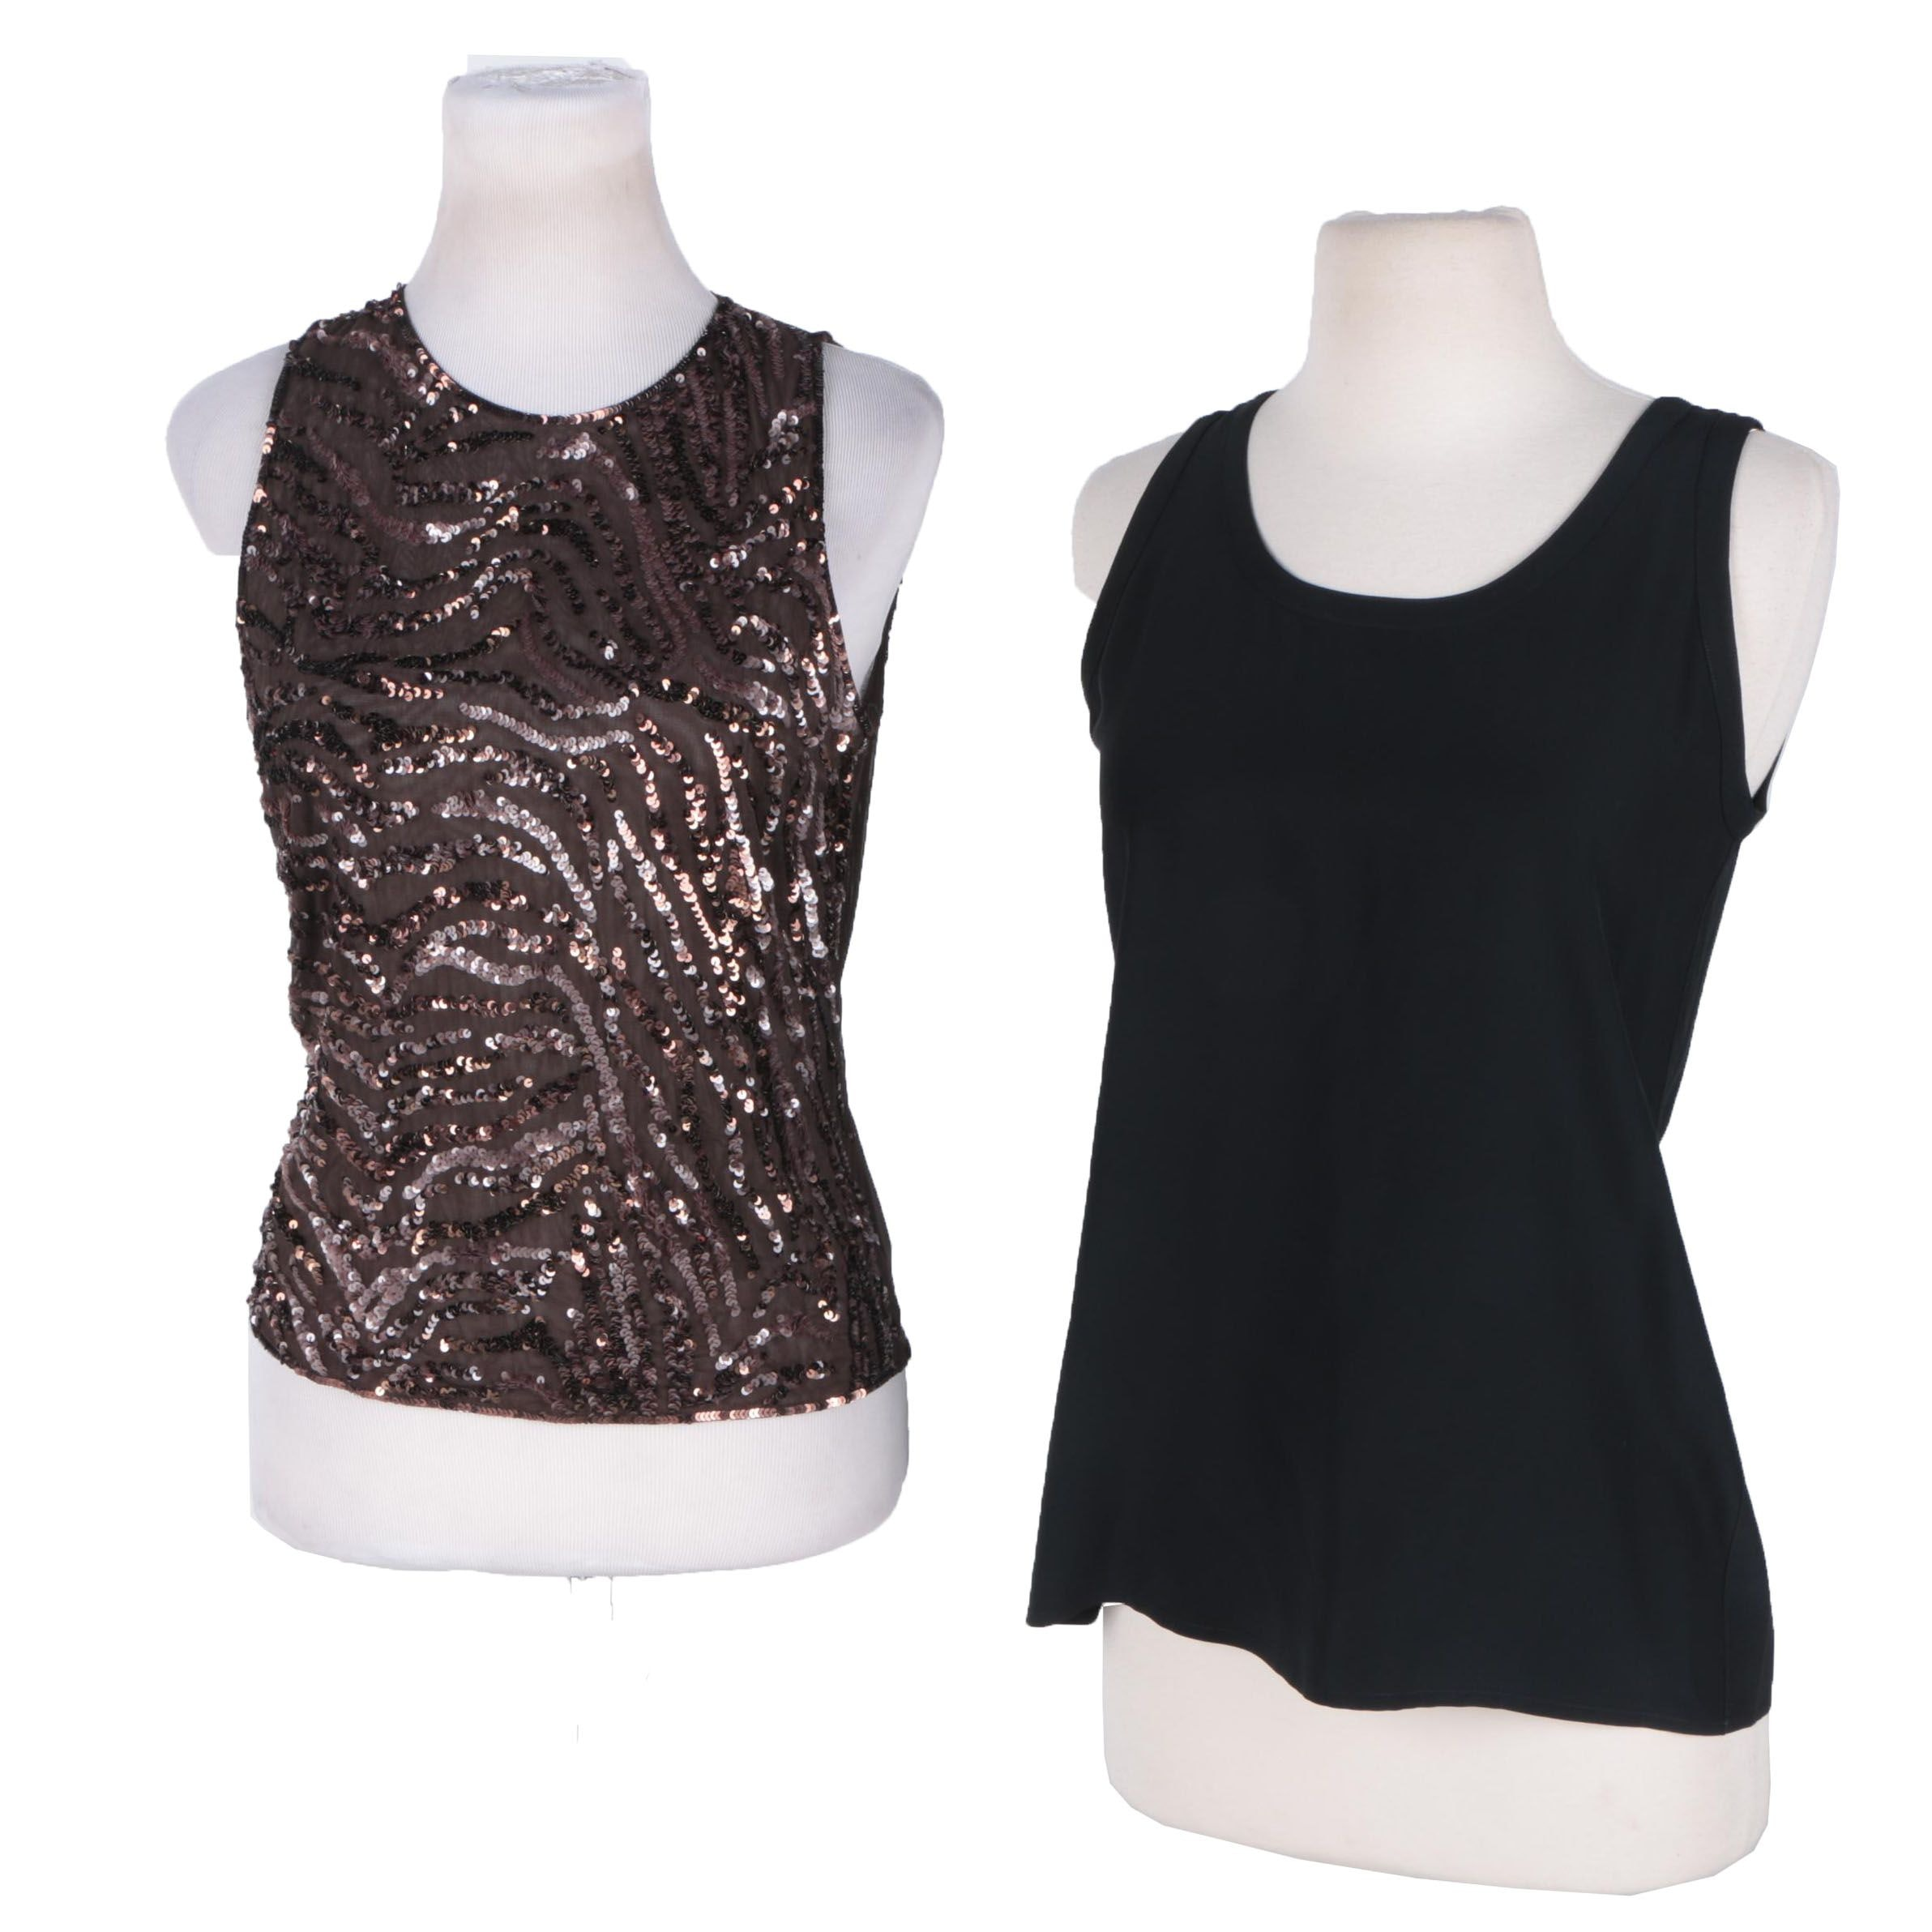 Womens Chanel and Escada Tops